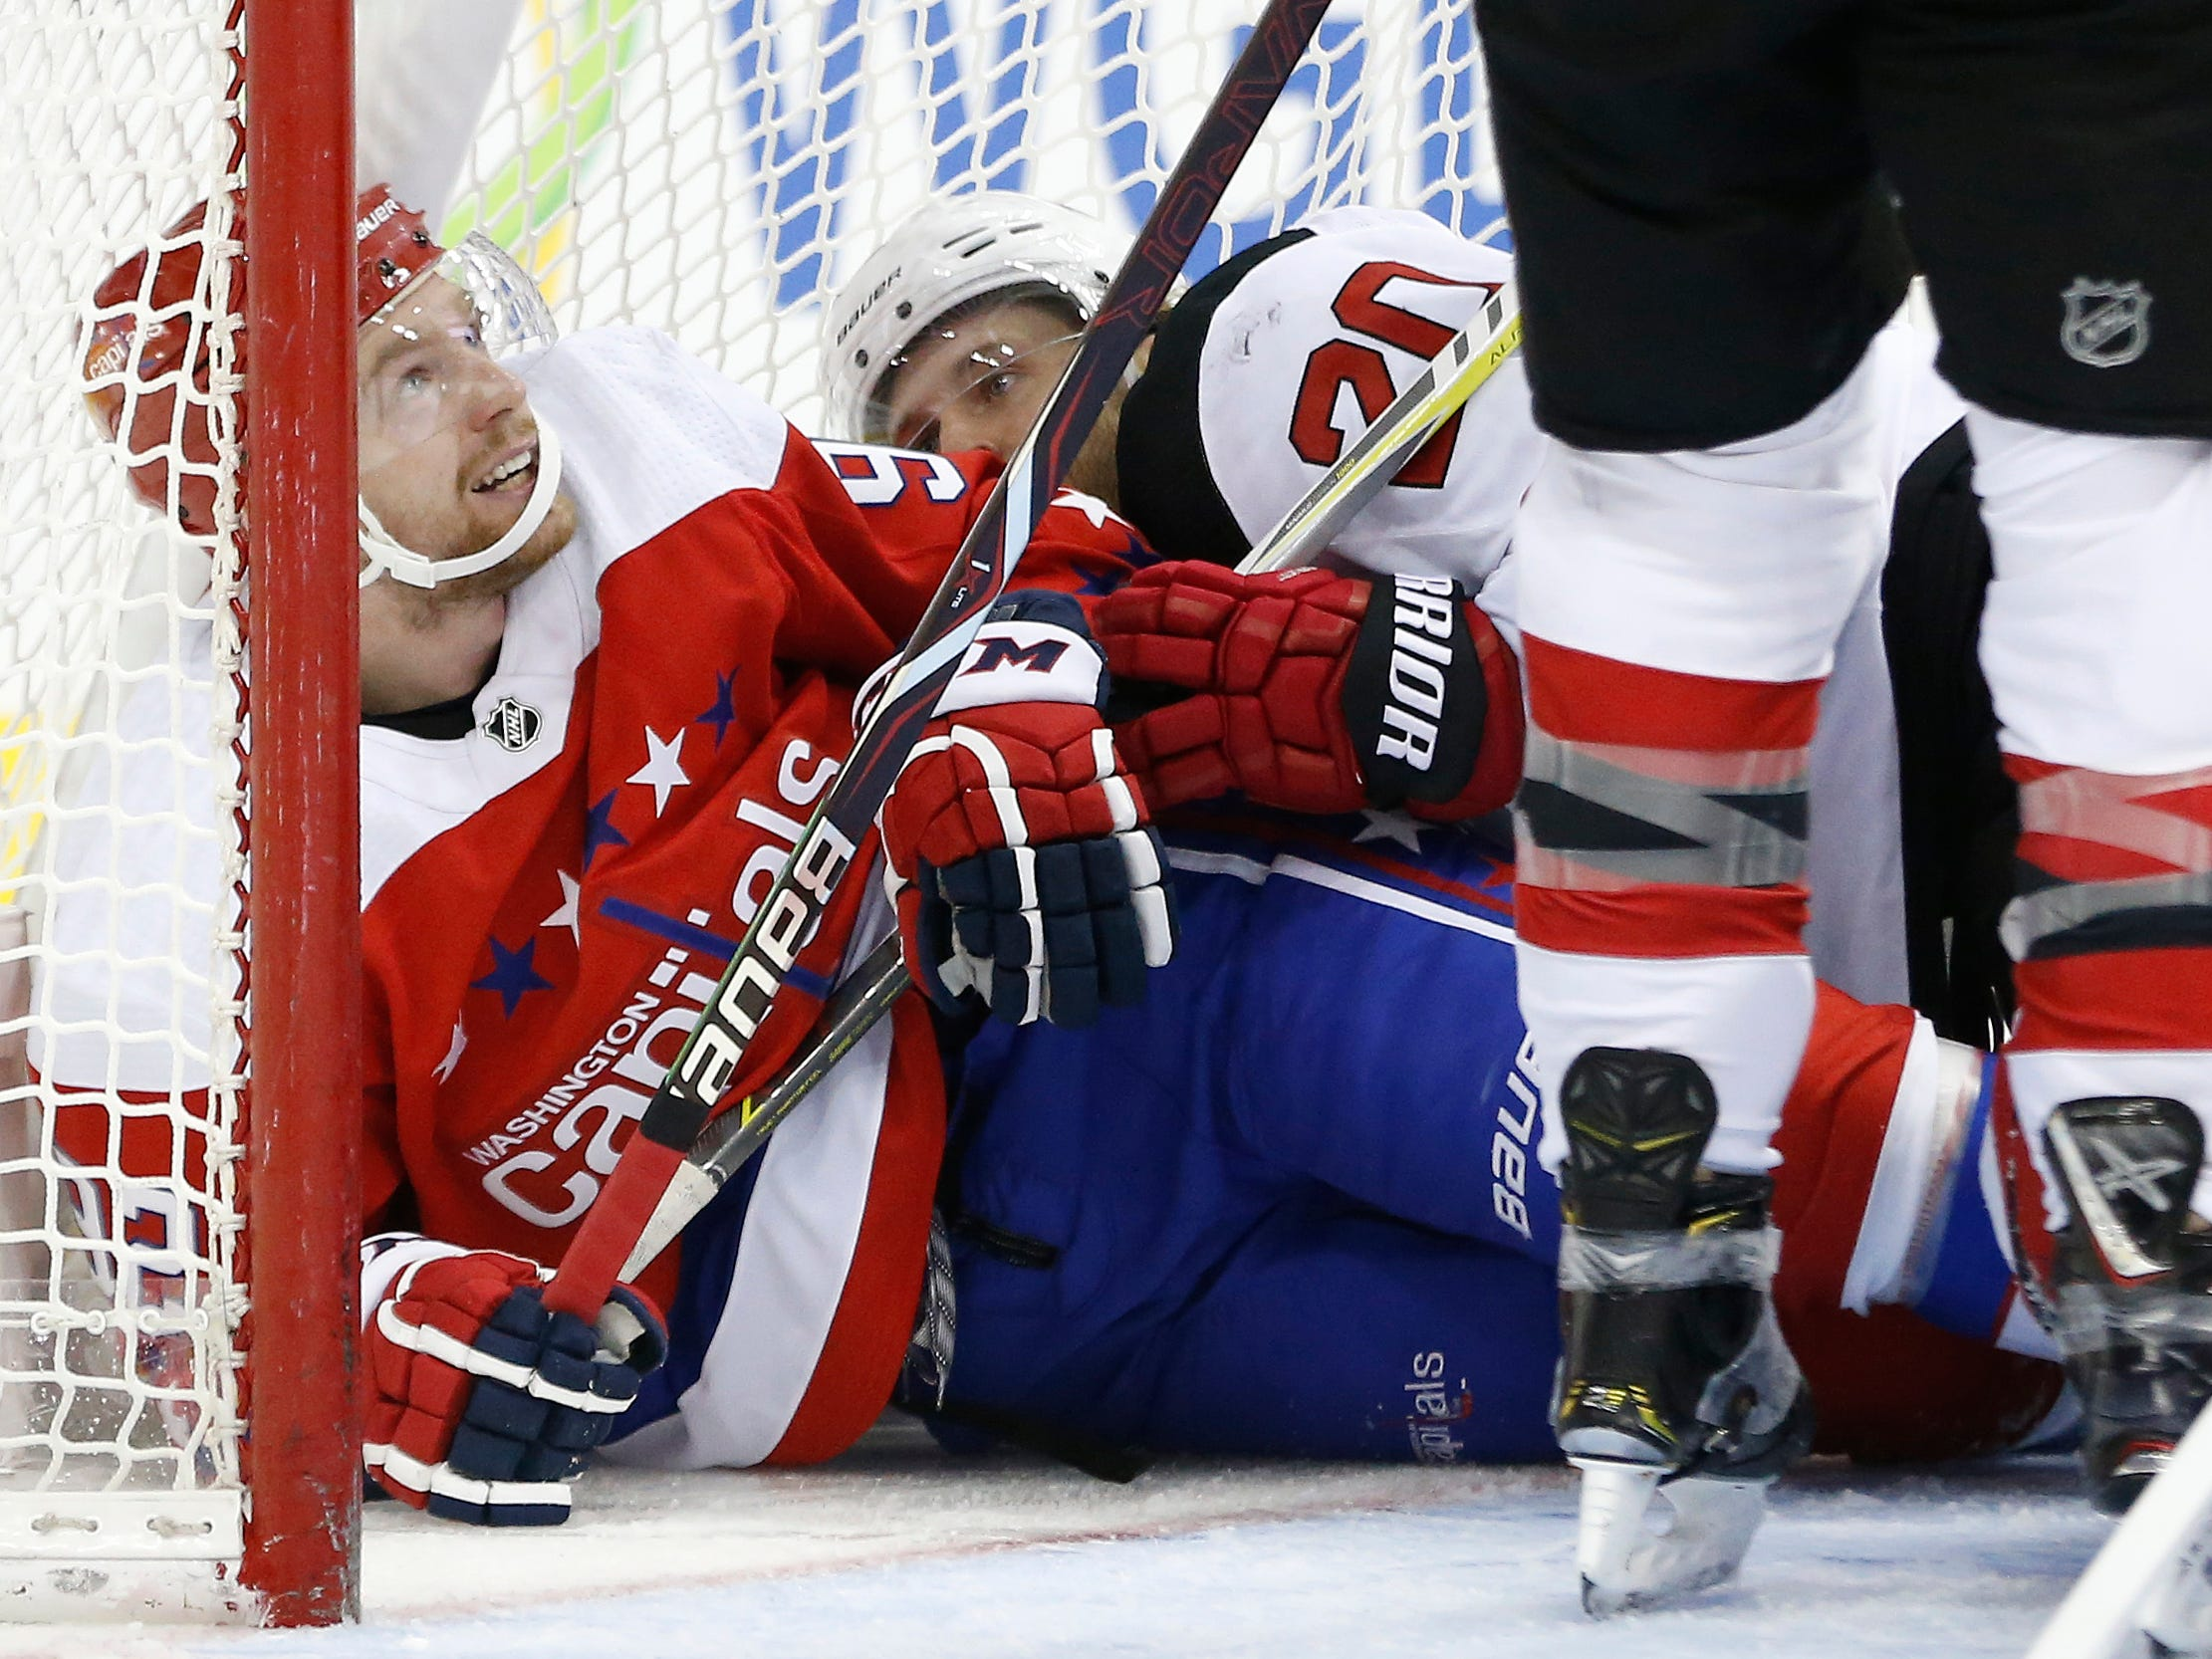 Nov. 30: Washington Capitals center Evgeny Kuznetsov, who returned from an injury absence, lies in the goal after being checked by New Jersey Devils center Blake Coleman.